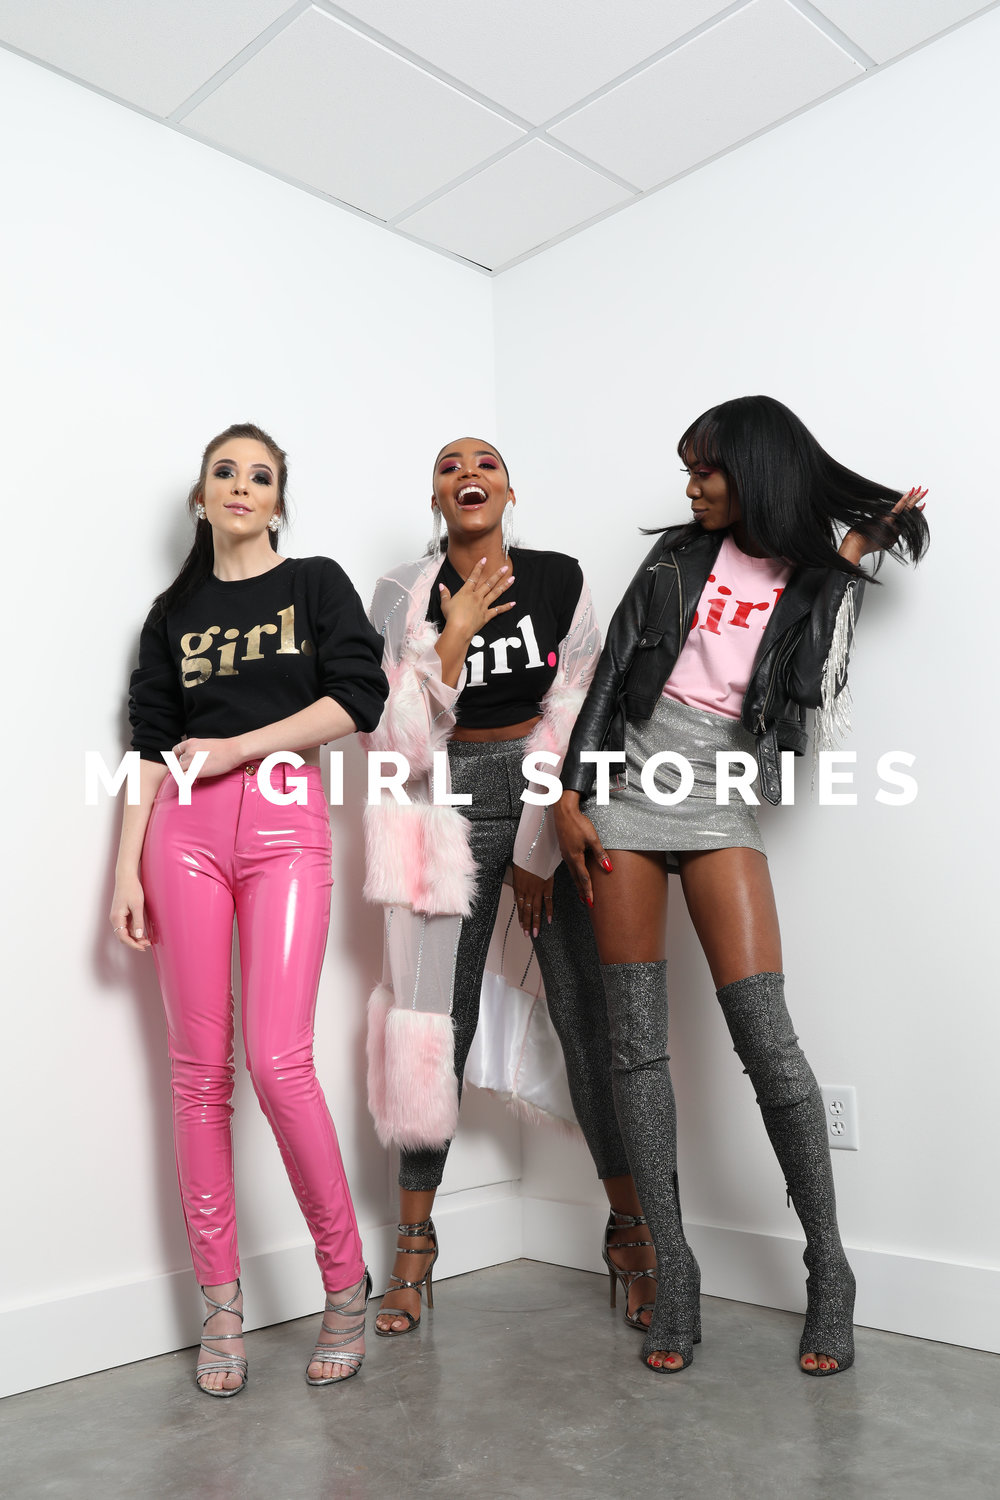 BRIANNA WRIGHT AND WHITNEY SUBER WITH STEVEN G PHOTOGRAPHY IN KANSAS CITY PHOTOSHOOT STYLED BY JASMINE DIANE IN 2019.jpg